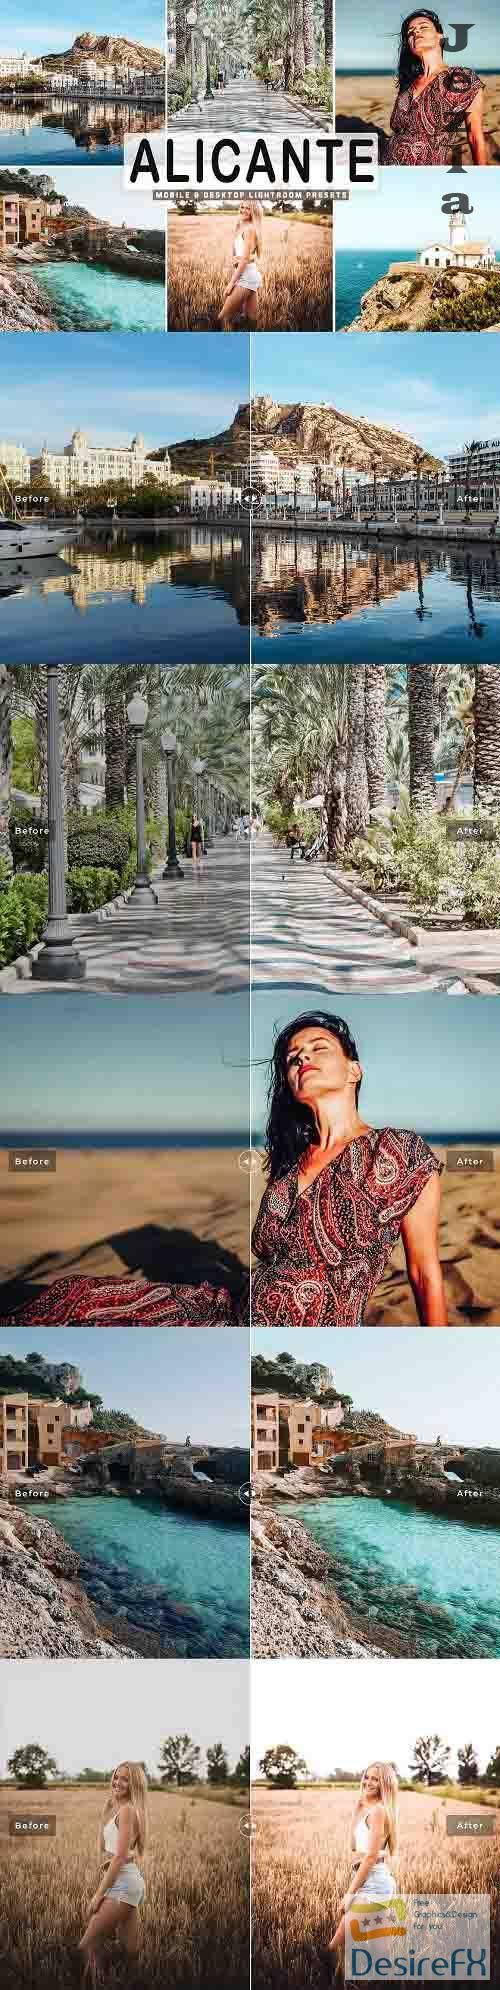 Alicante Lightroom Presets Pack - 5277757 - Mobile & Desktop